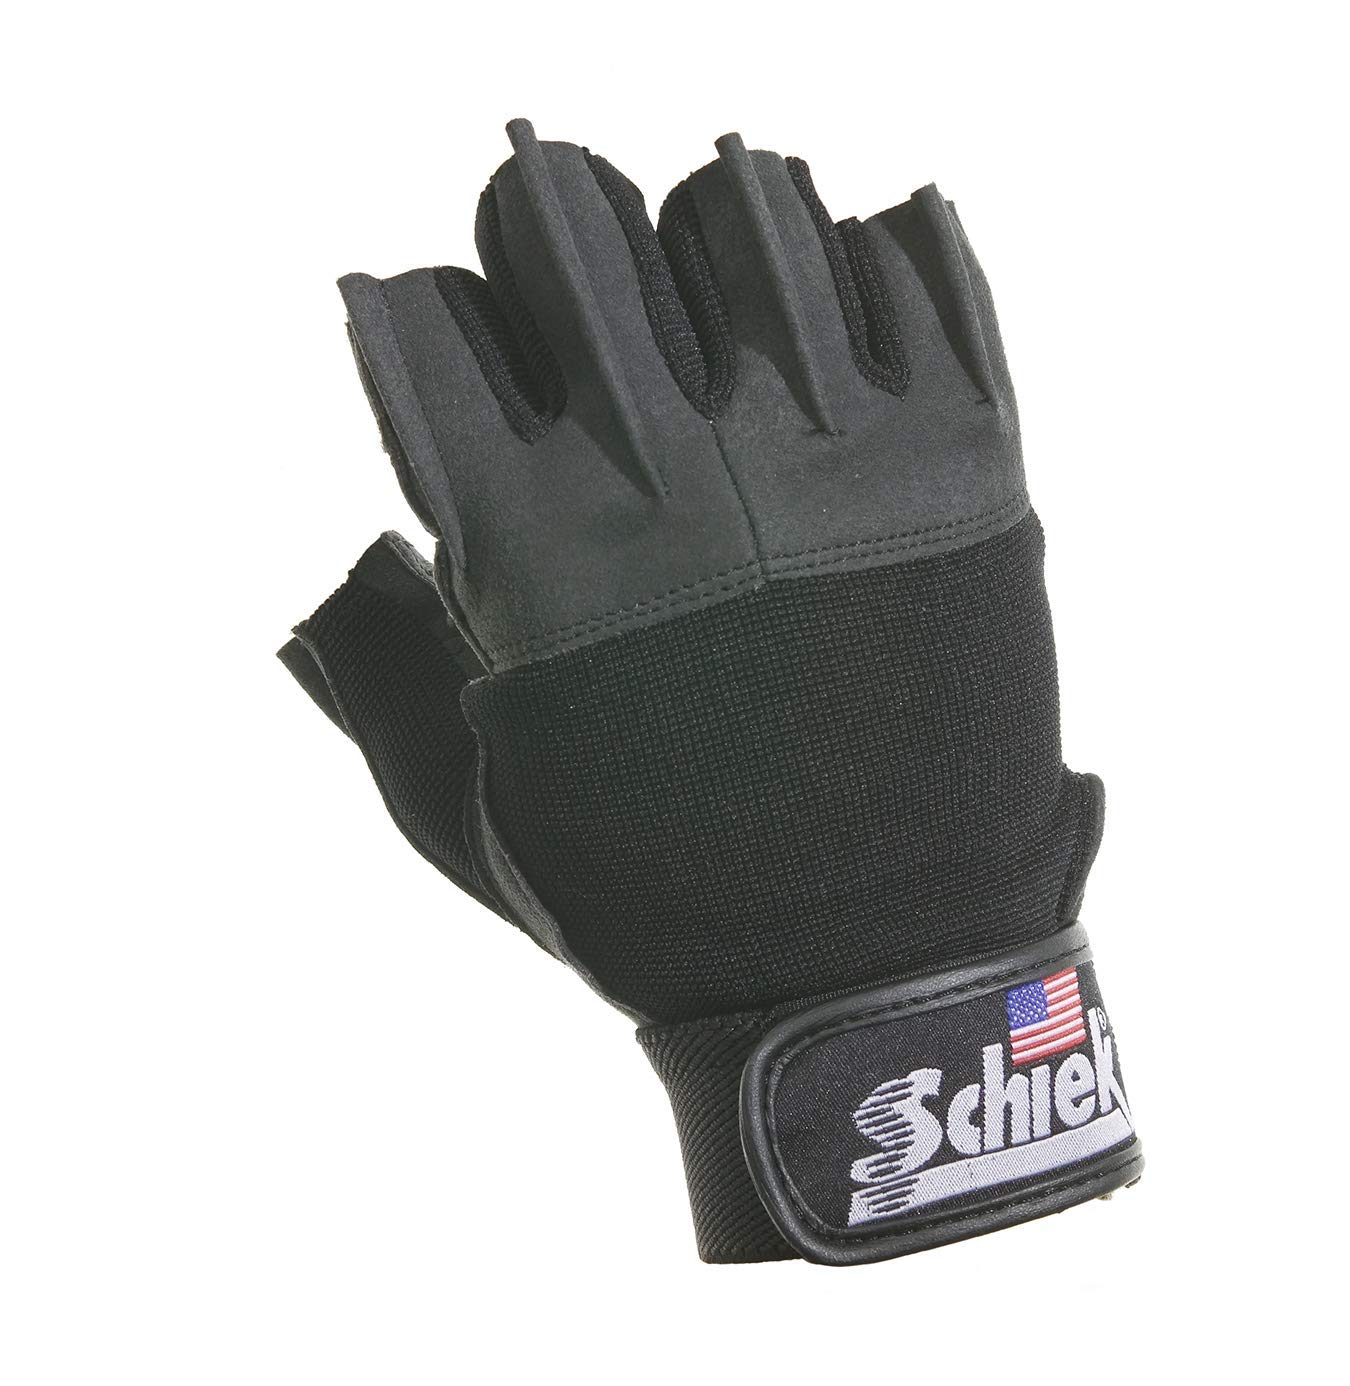 Schiek 530 M Platinum Lifting Gloves